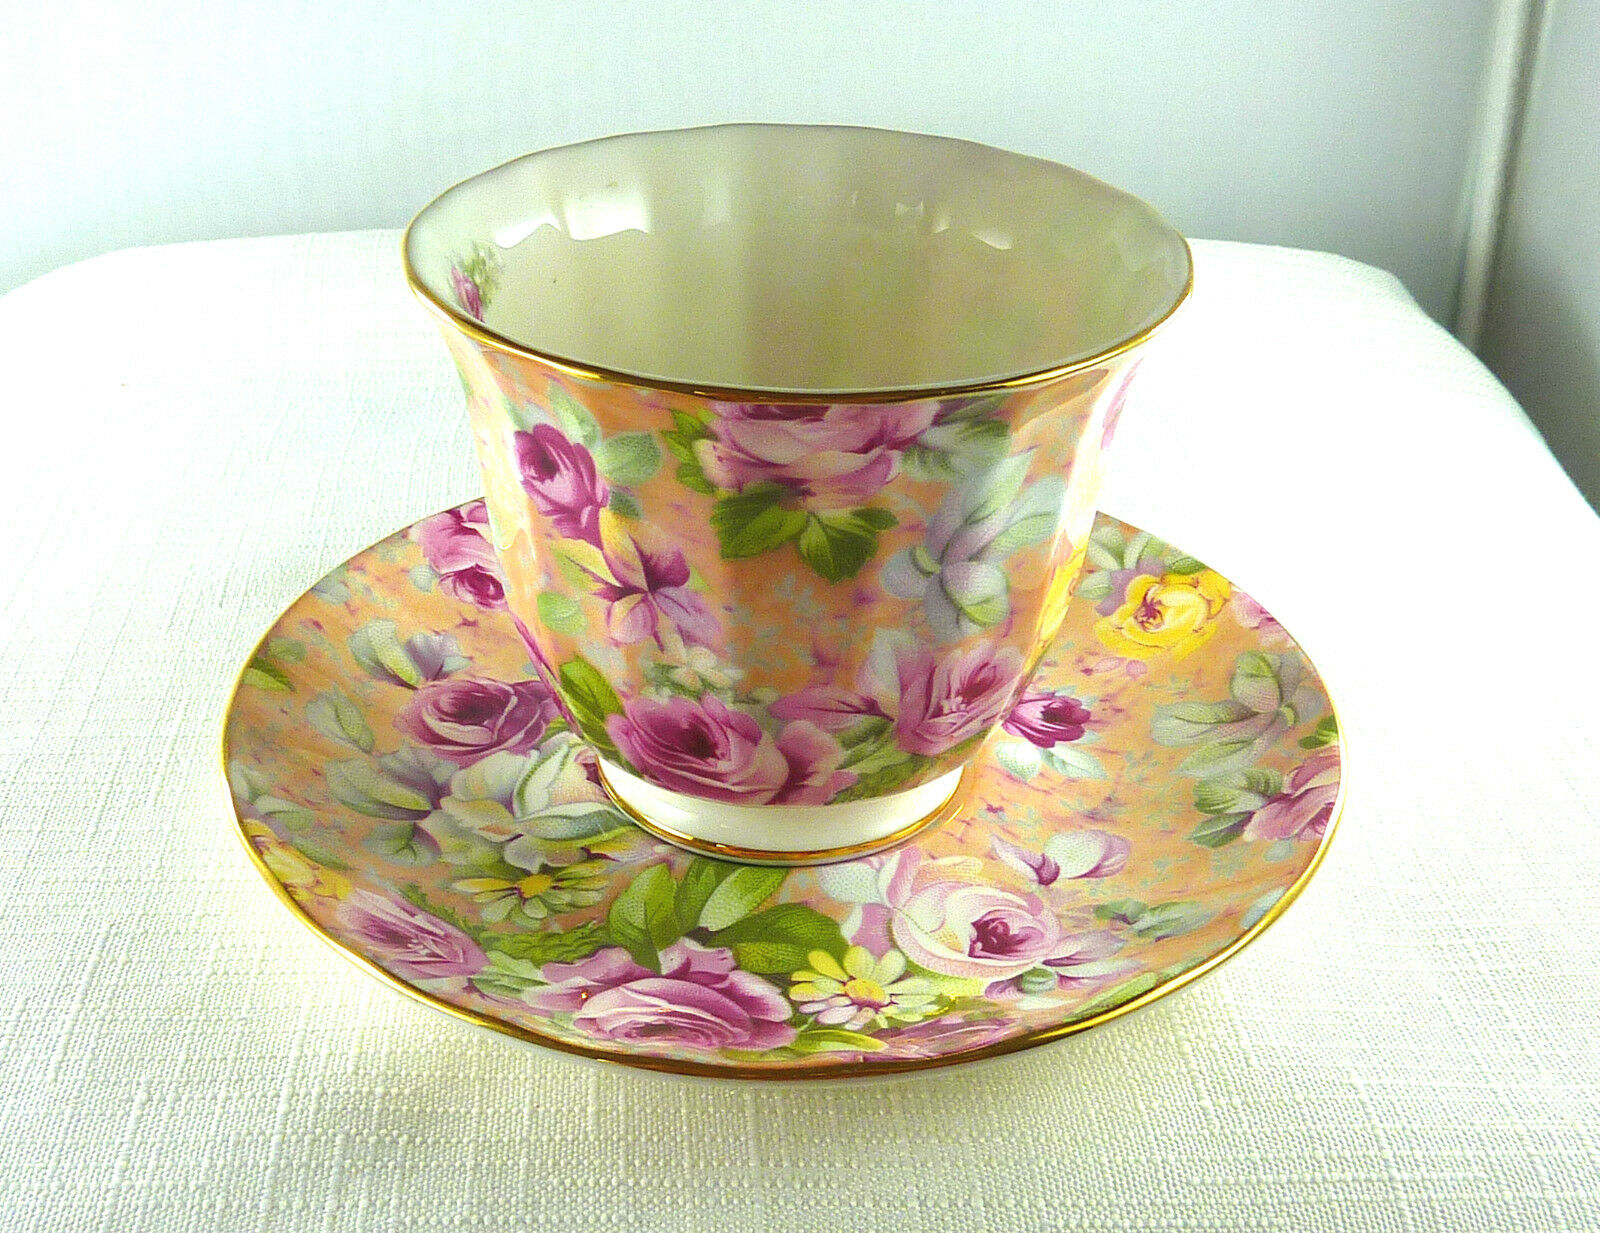 floral chintz camile crown trent limited fine bone china england cup saucer cad. Black Bedroom Furniture Sets. Home Design Ideas